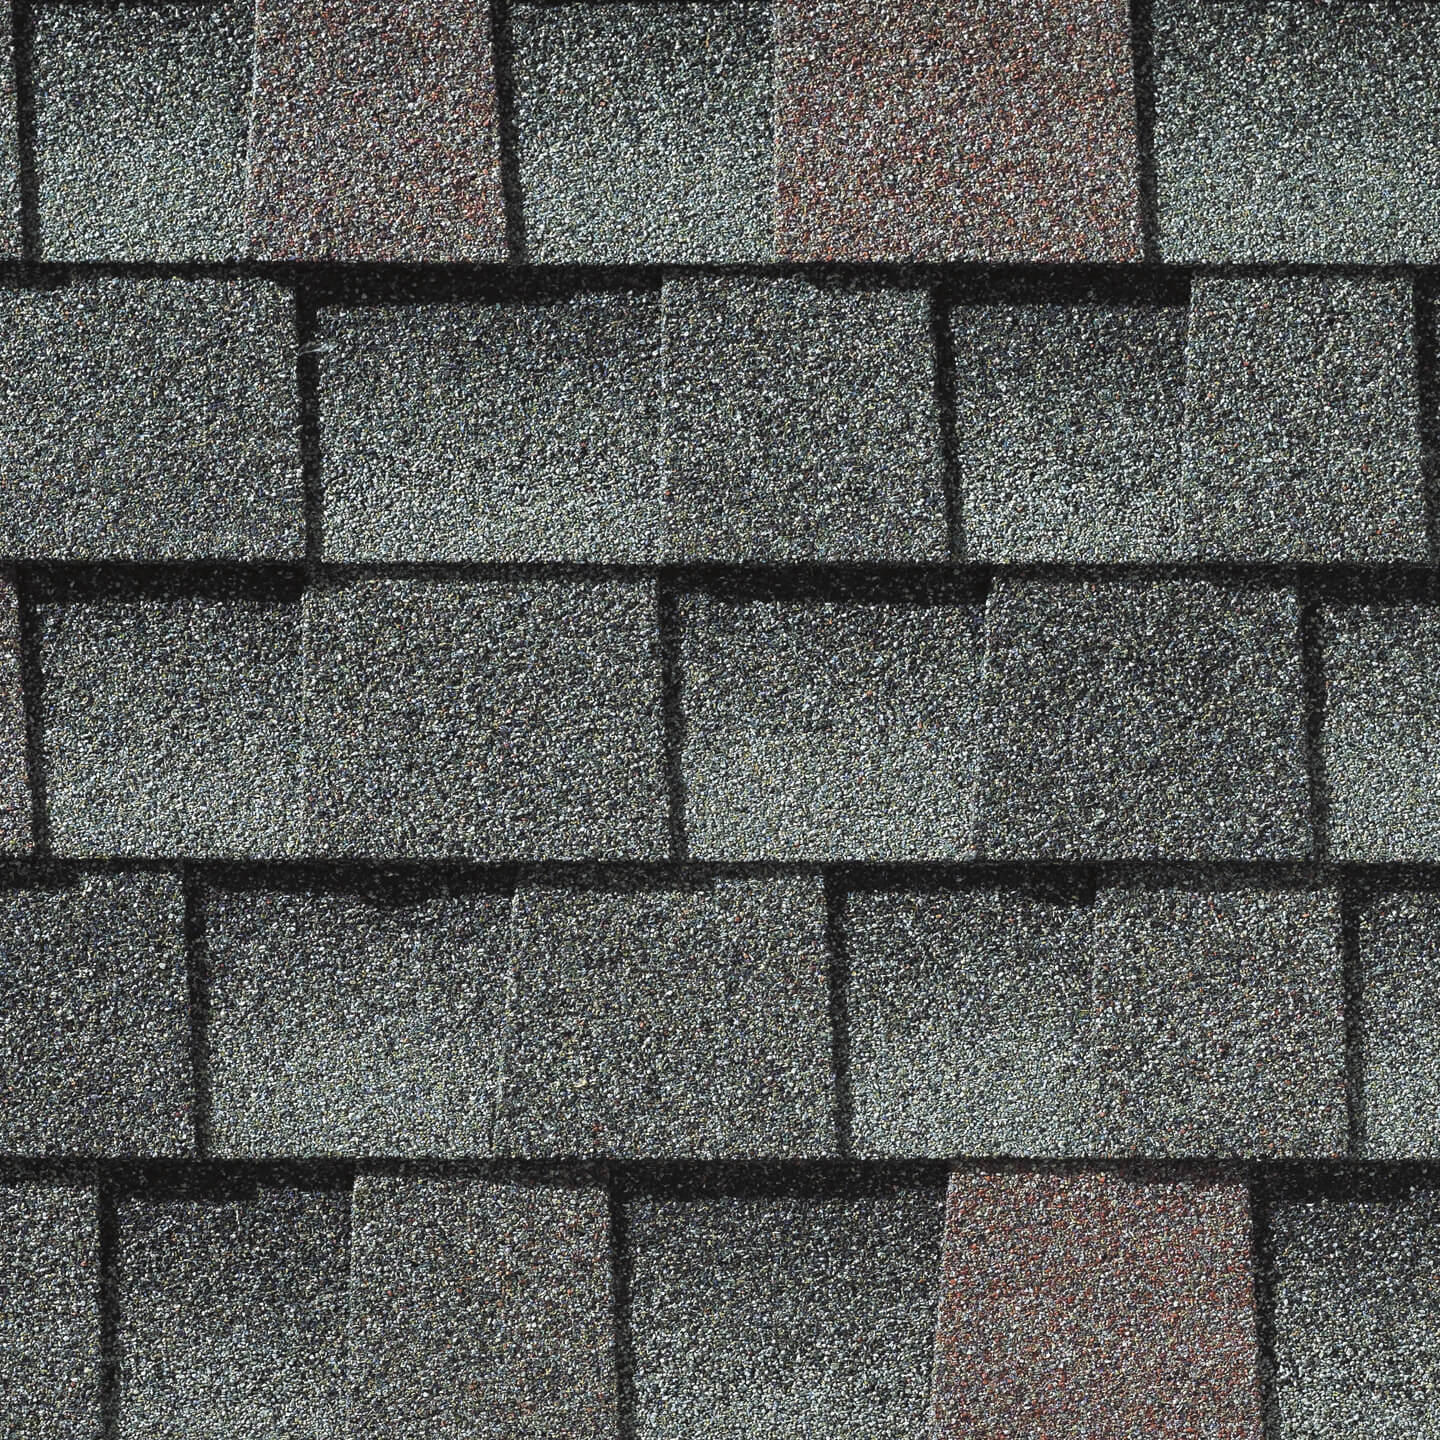 Timberline Williamsburg Slate shingle sample